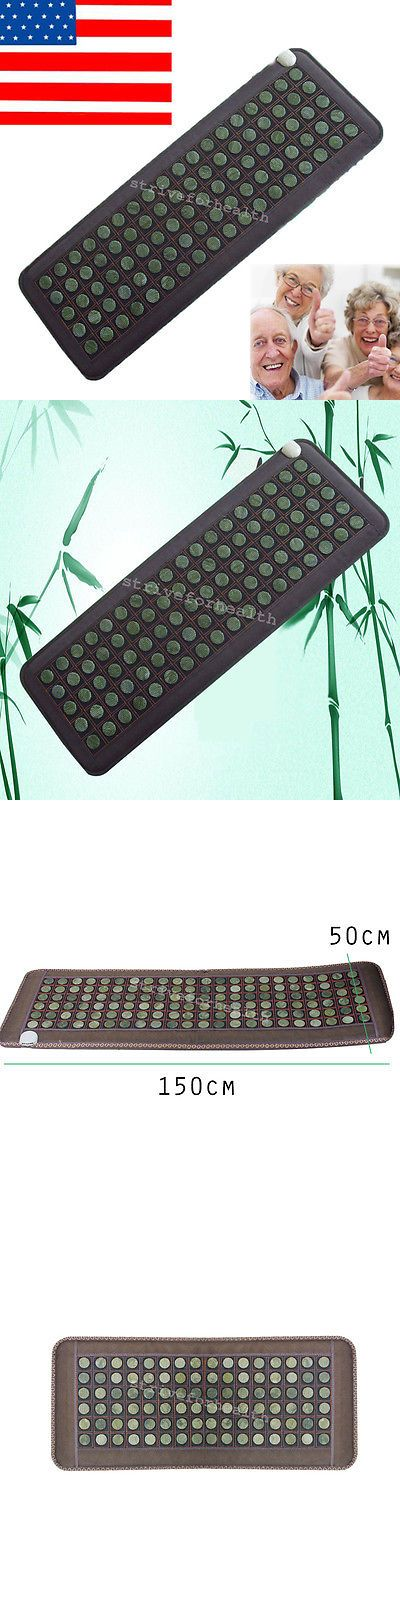 Massage Stones and Rocks: New Natural Jade Tourmaline Stones Infrared Heating Mat -> BUY IT NOW ONLY: $144 on eBay!